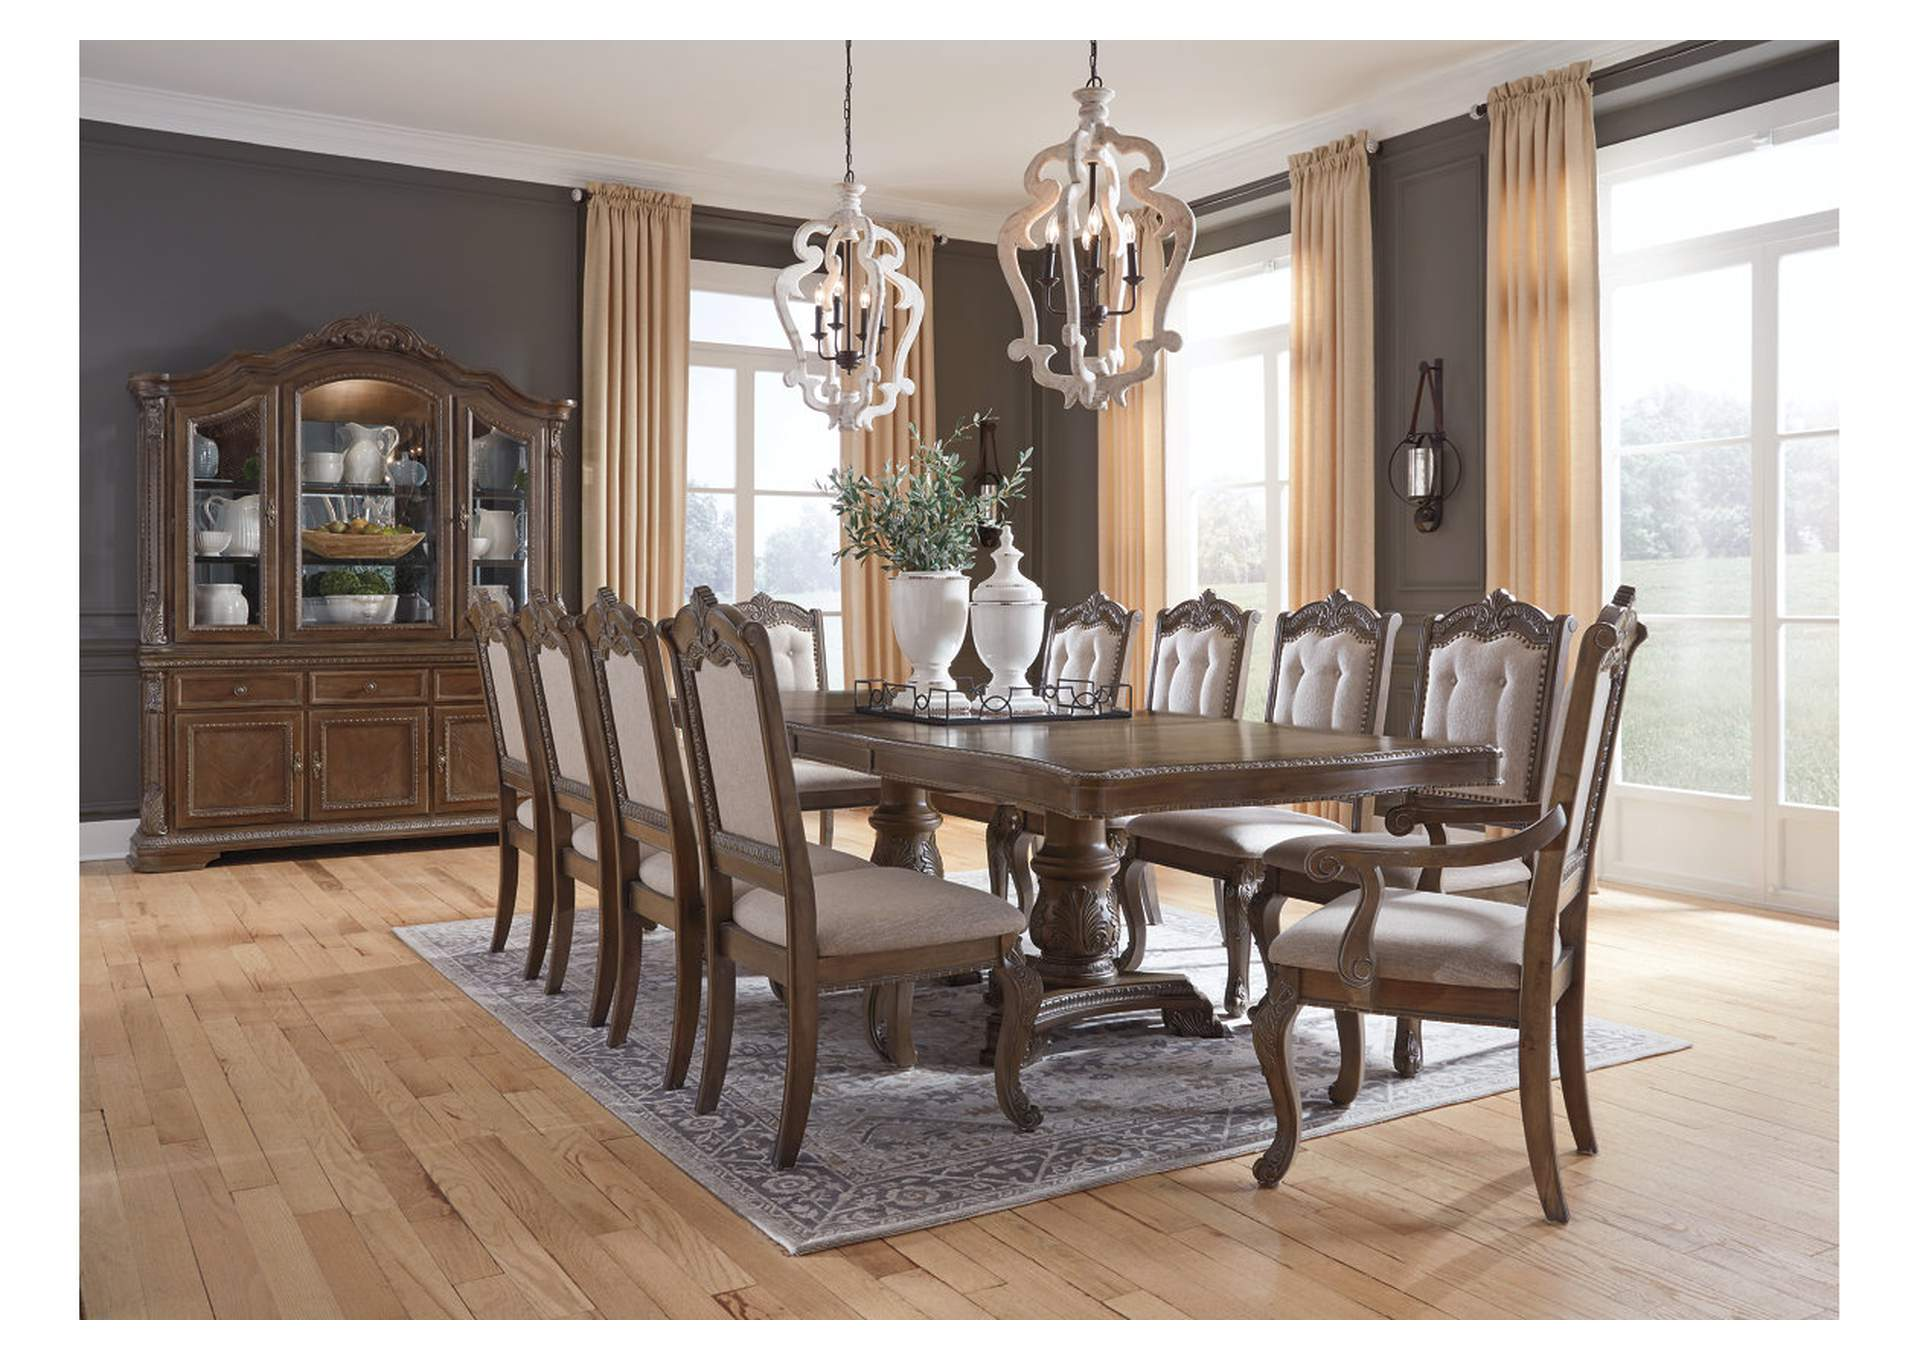 Charmond Dining Table W 8 Side Chairs And 2 Arm Chairs Ashley Furniture Homestore Independently Owned And Operated By Fairdeal Furniture